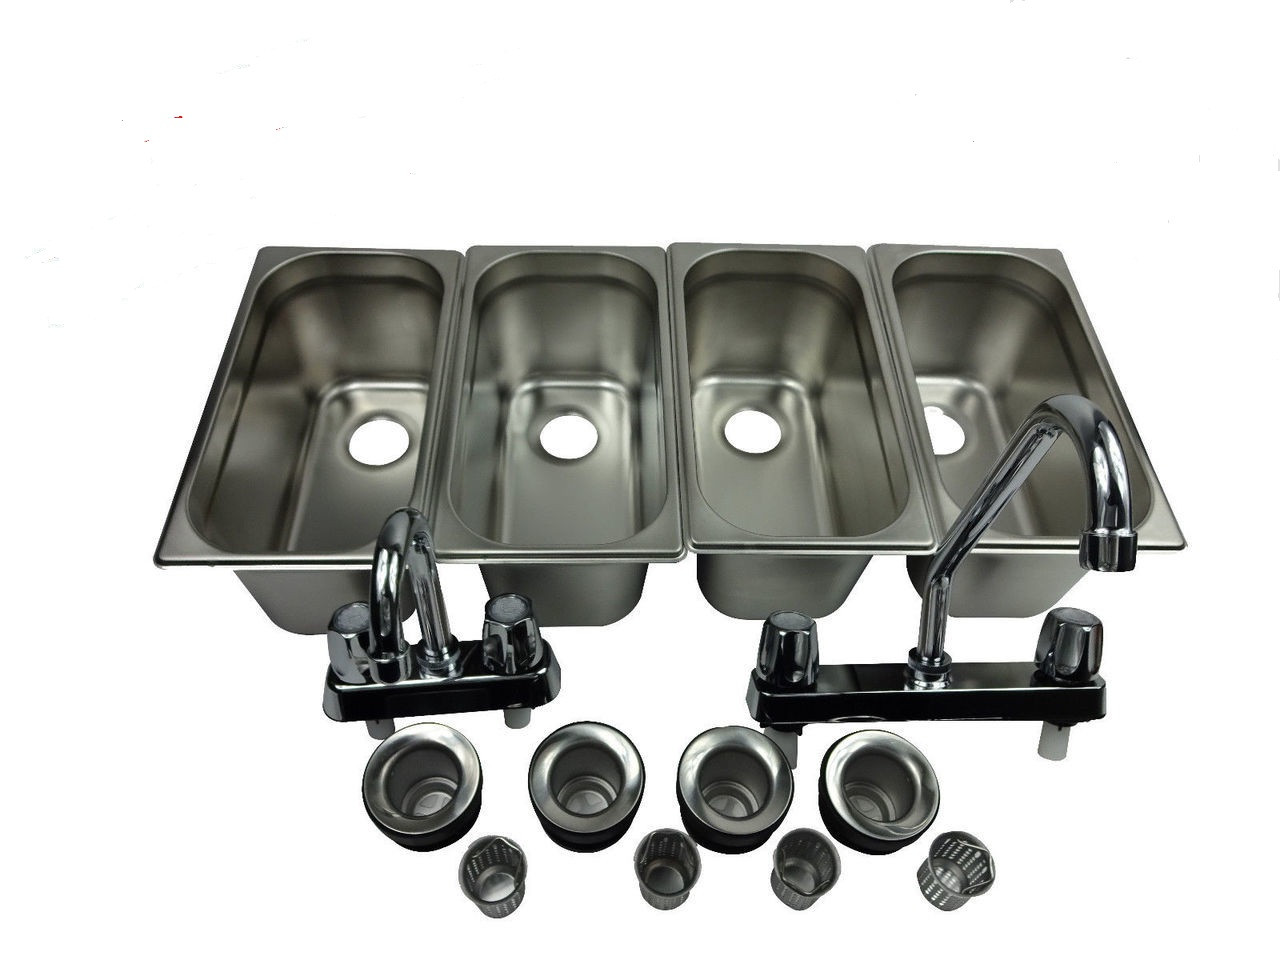 Standard 4 Compartment Concession Sink Set & Hand Washing